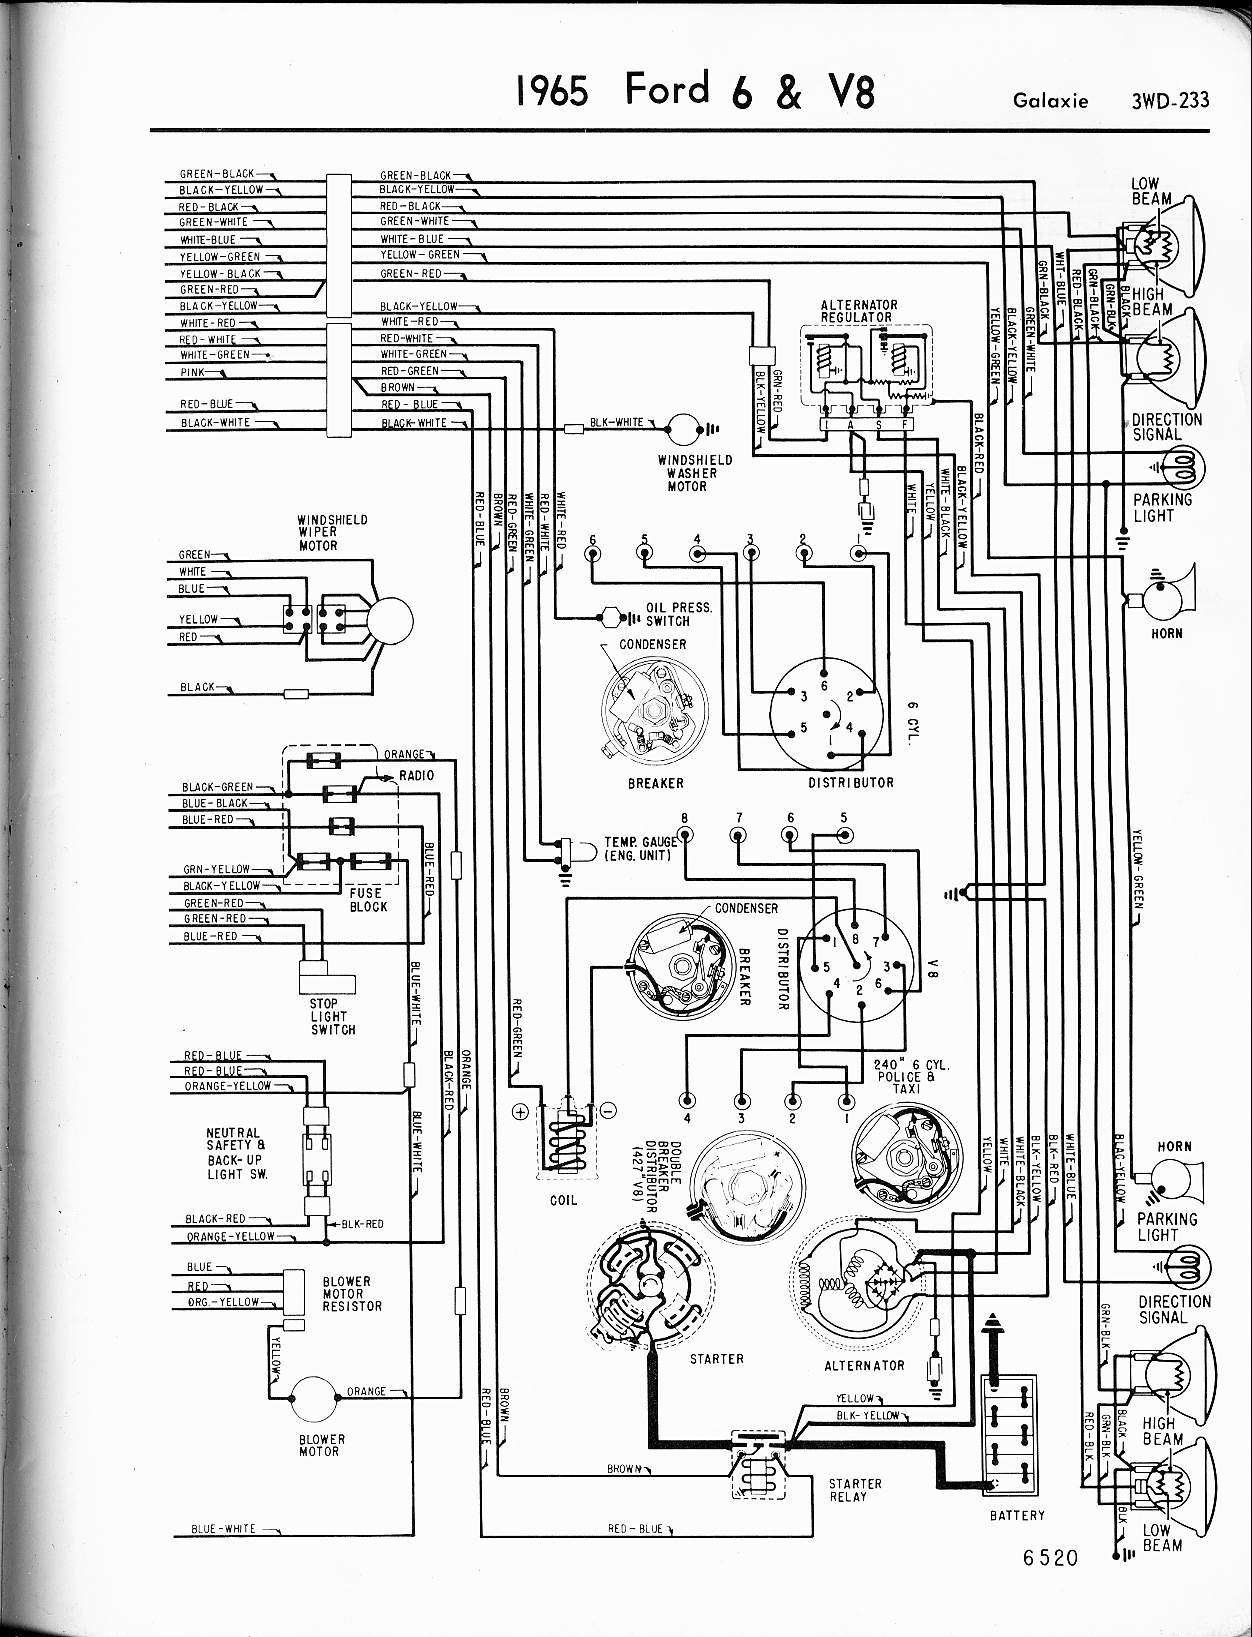 Falcon Wiring Diagrams - 1964 chrysler newport wiring diagram